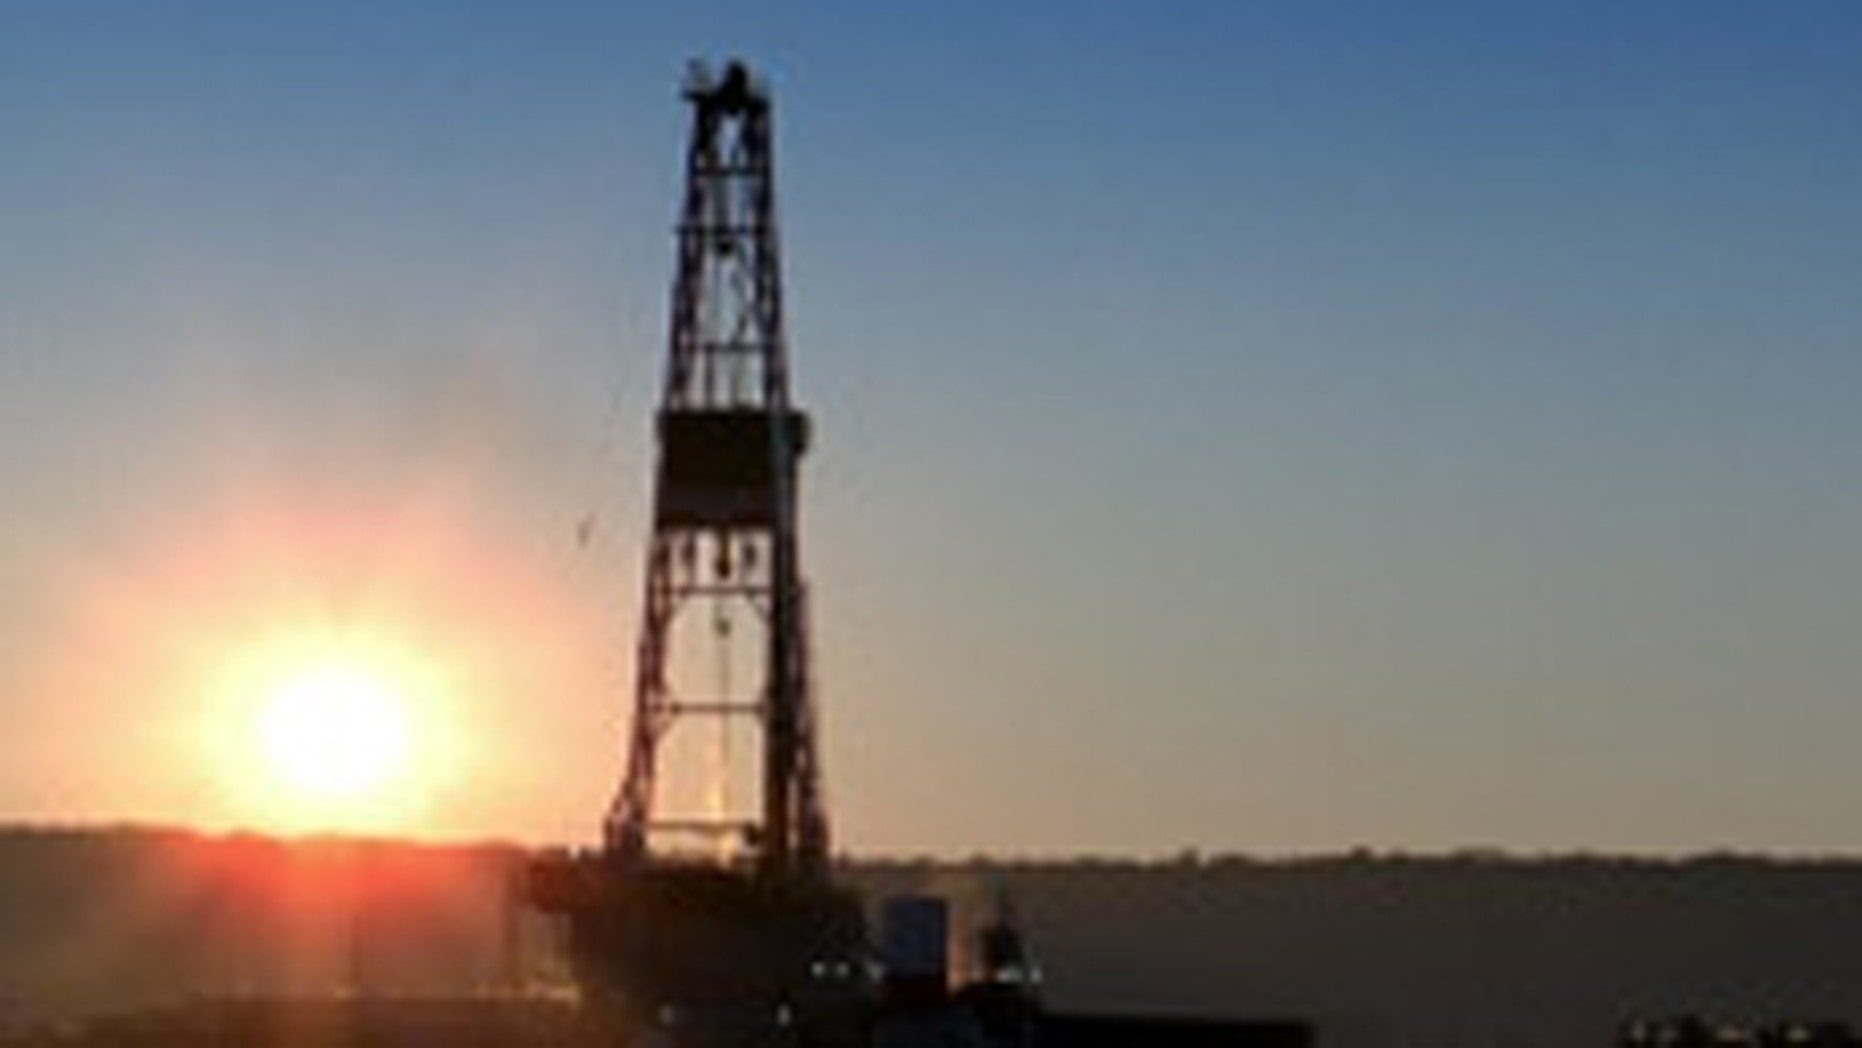 Shown here is a North Dakota oil rig.